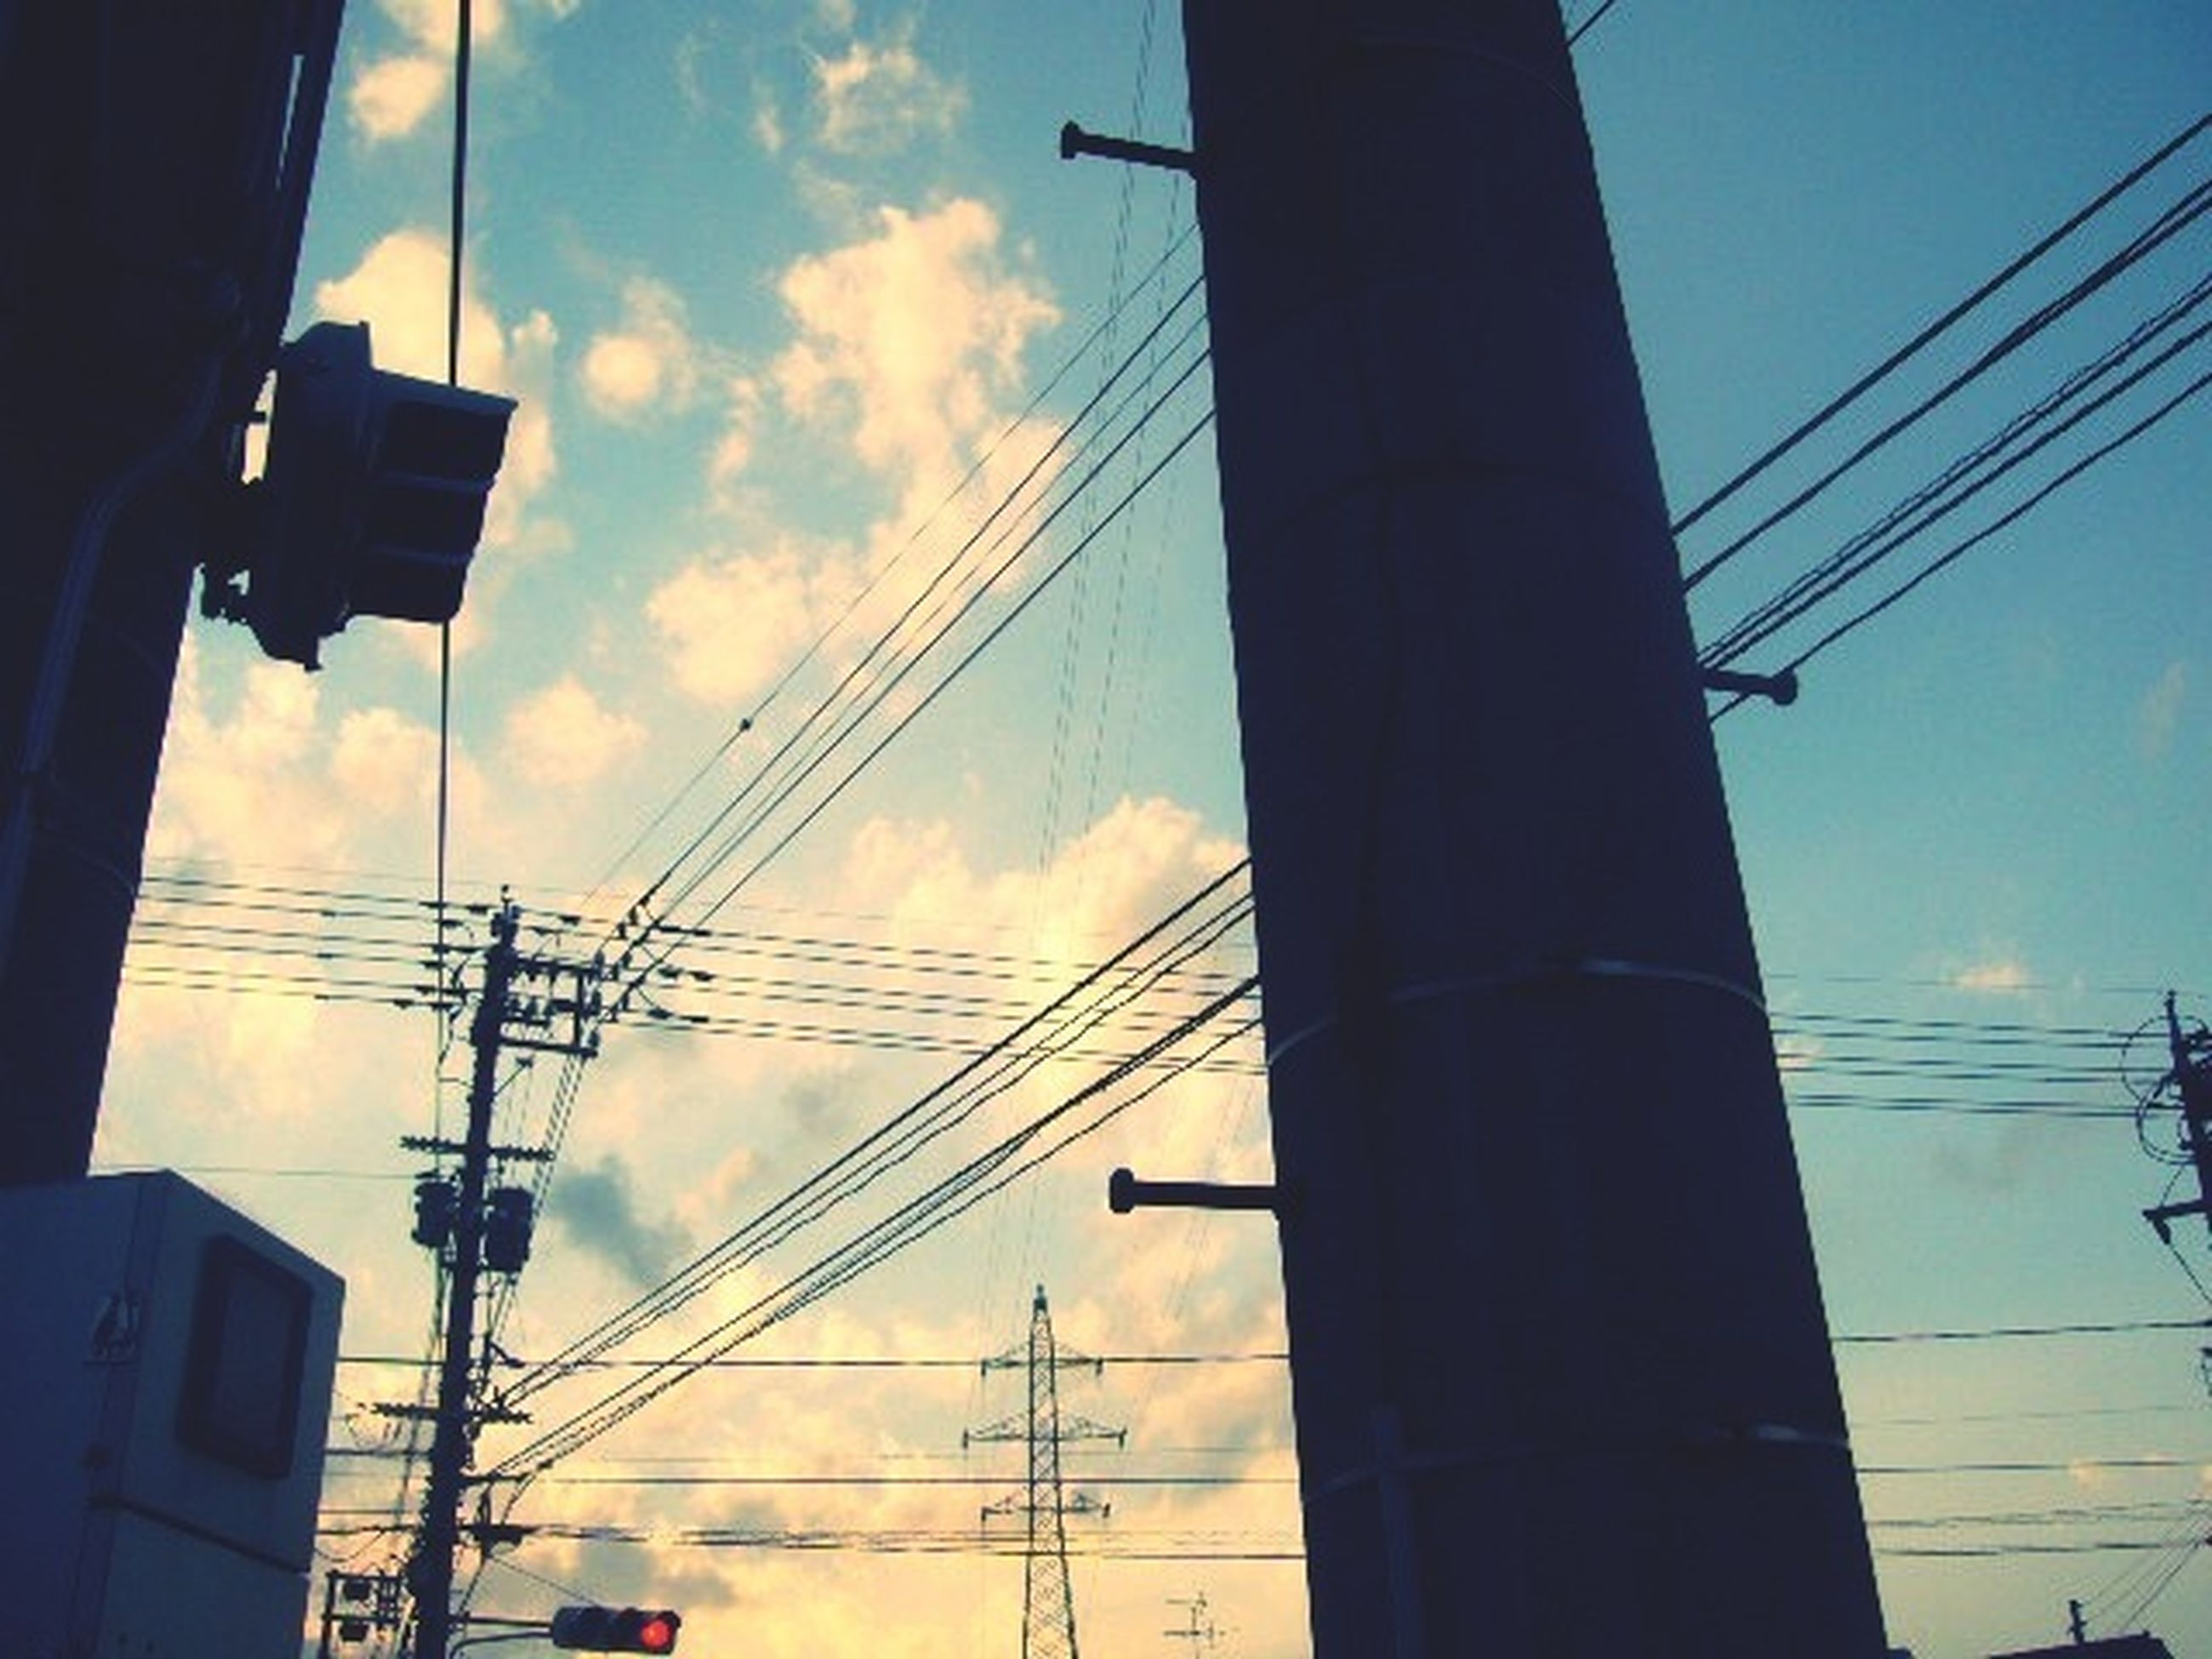 power line, electricity pylon, electricity, power supply, low angle view, cable, sky, connection, fuel and power generation, technology, power cable, built structure, building exterior, silhouette, cloud - sky, architecture, sunset, cloud, cloudy, no people